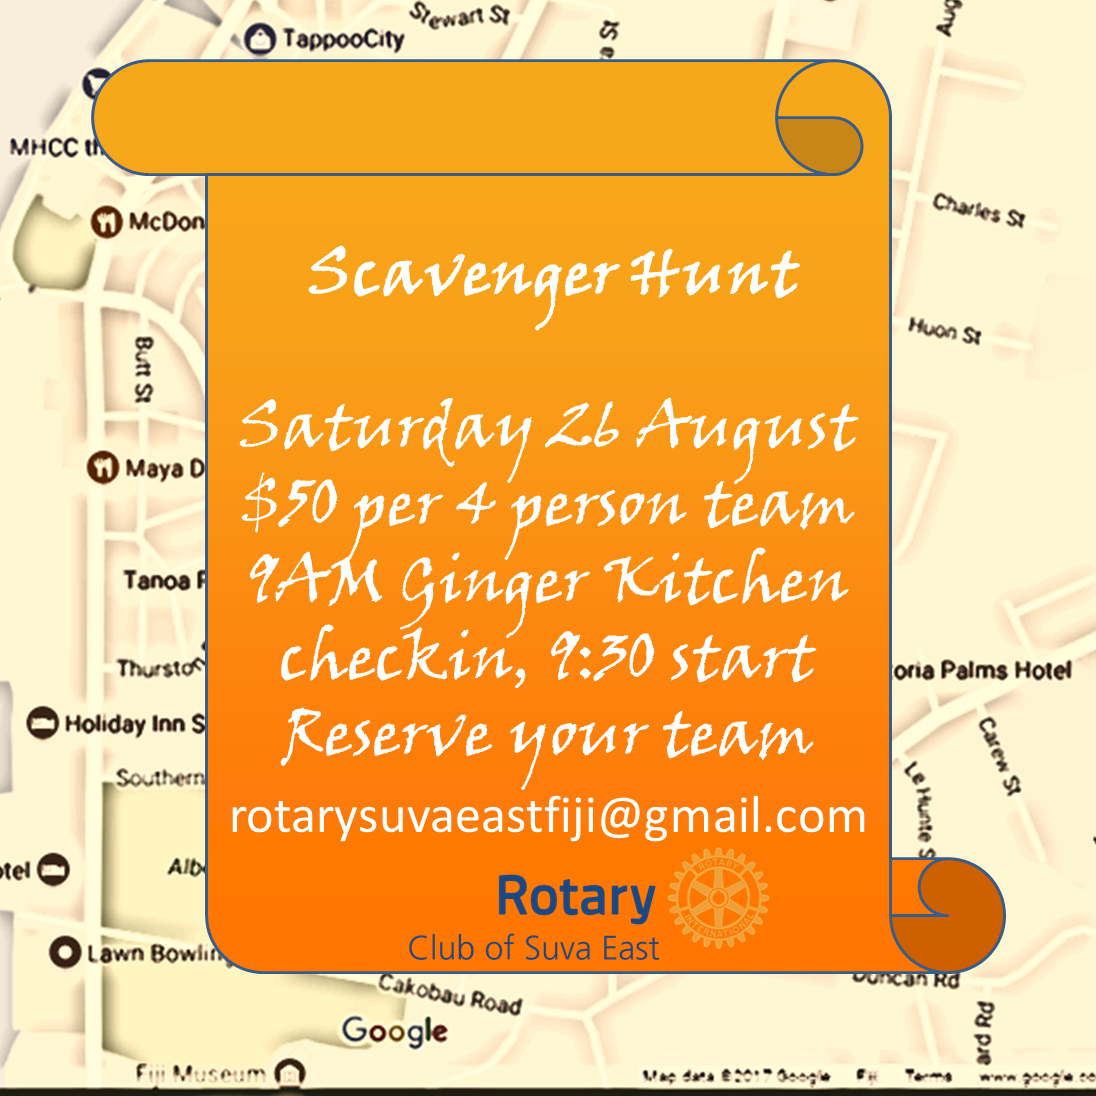 Scavenger Hunt Saturday 26 August $50 per 4 person team 9AM Ginger Kitchen checkin, 9:30 start Reserve your team rotarysuvaeastfiji@gmail.com